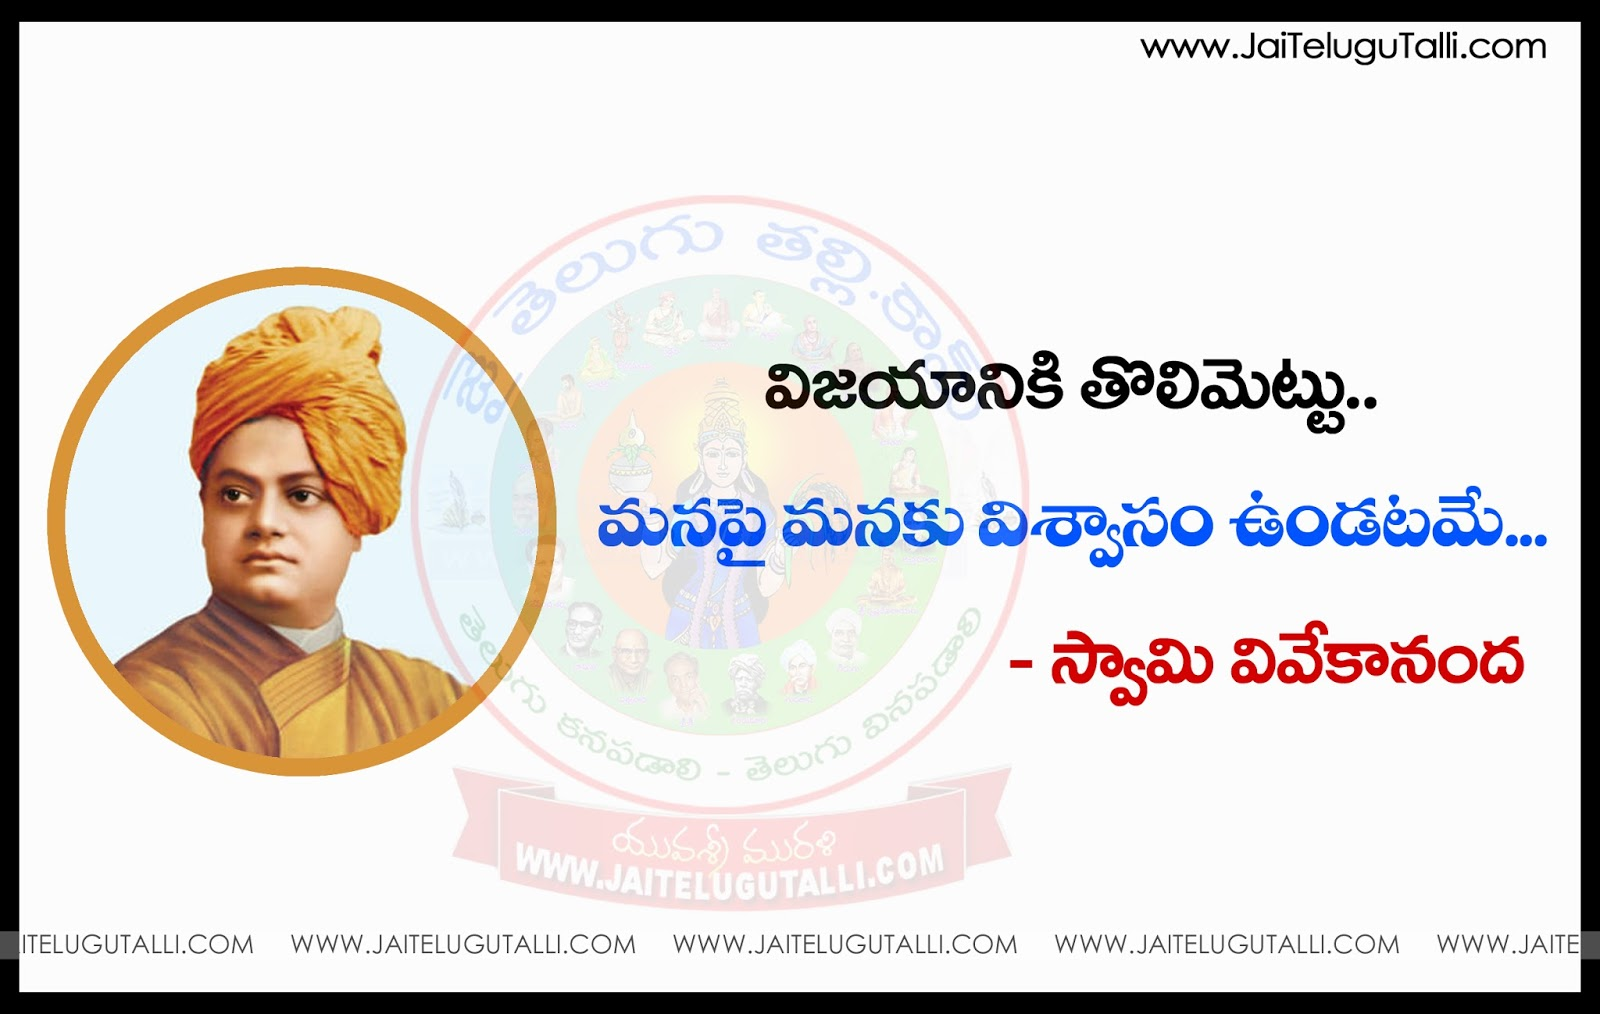 Quotes Vivekananda Swami Vivekananda Quotes In Telugu Wallpapers Best Life